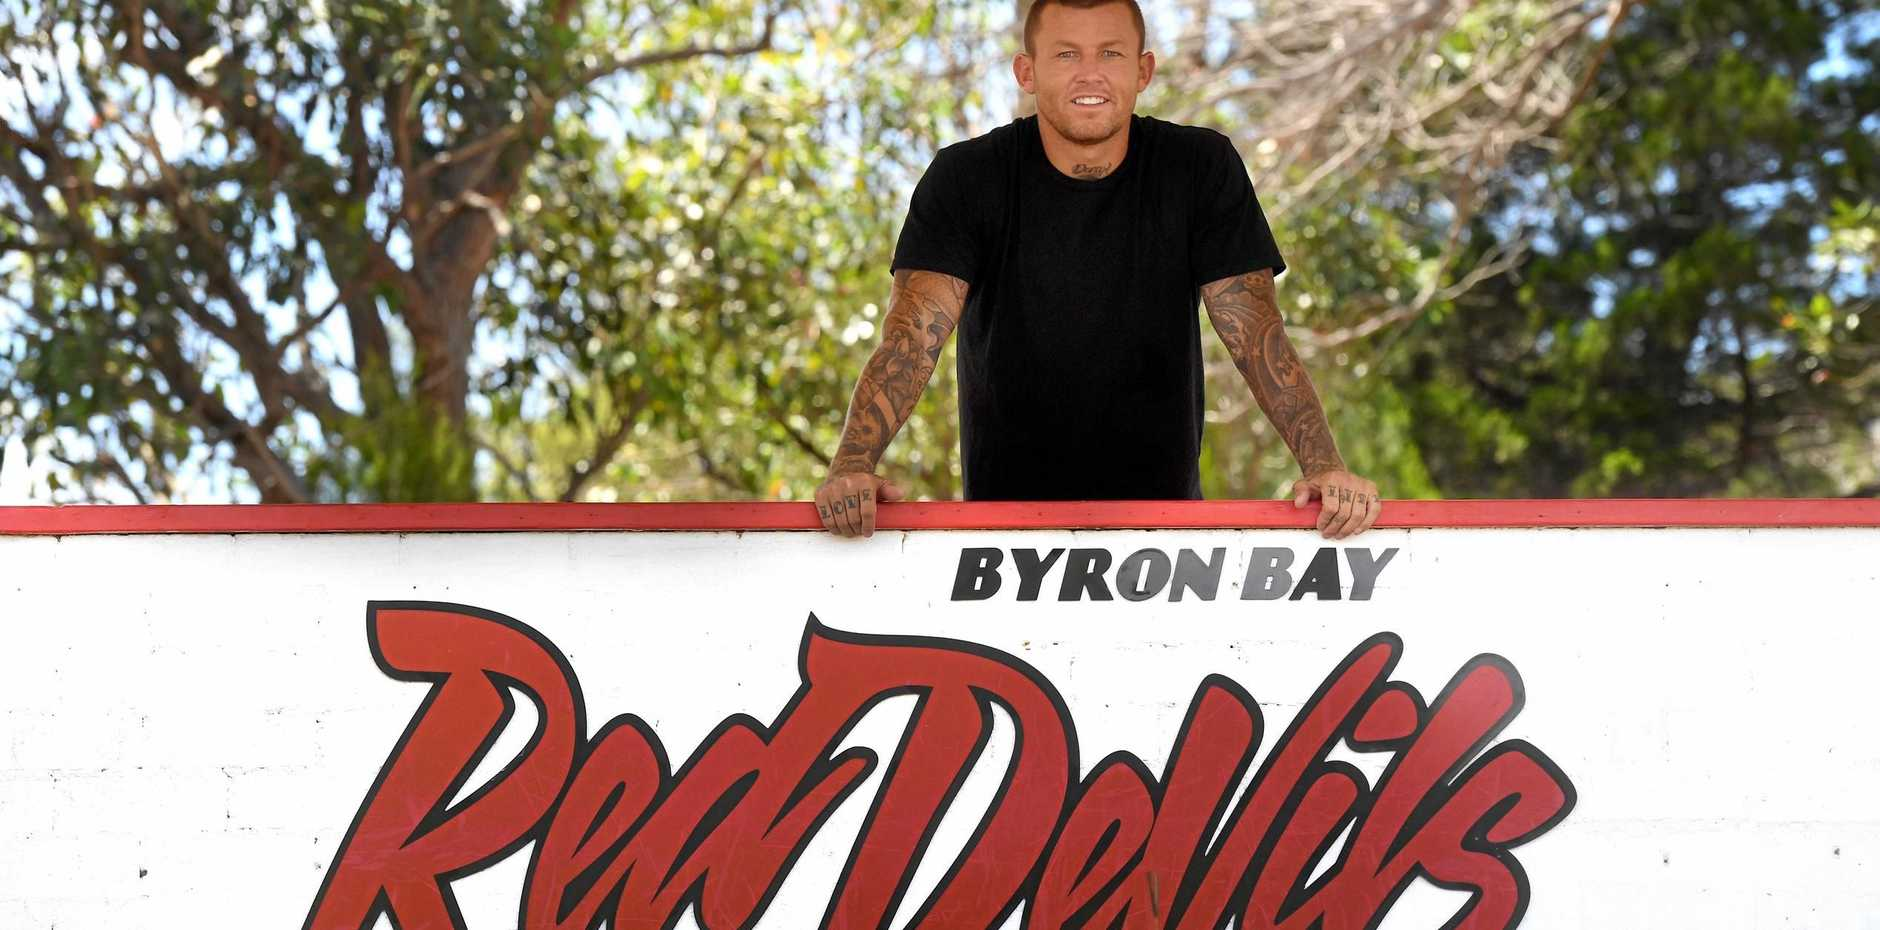 Todd Carney in Byron Bay after taking up captain-coach for Byron Bay Red Devils in the Northern Rivers Regional Rugby League this season.